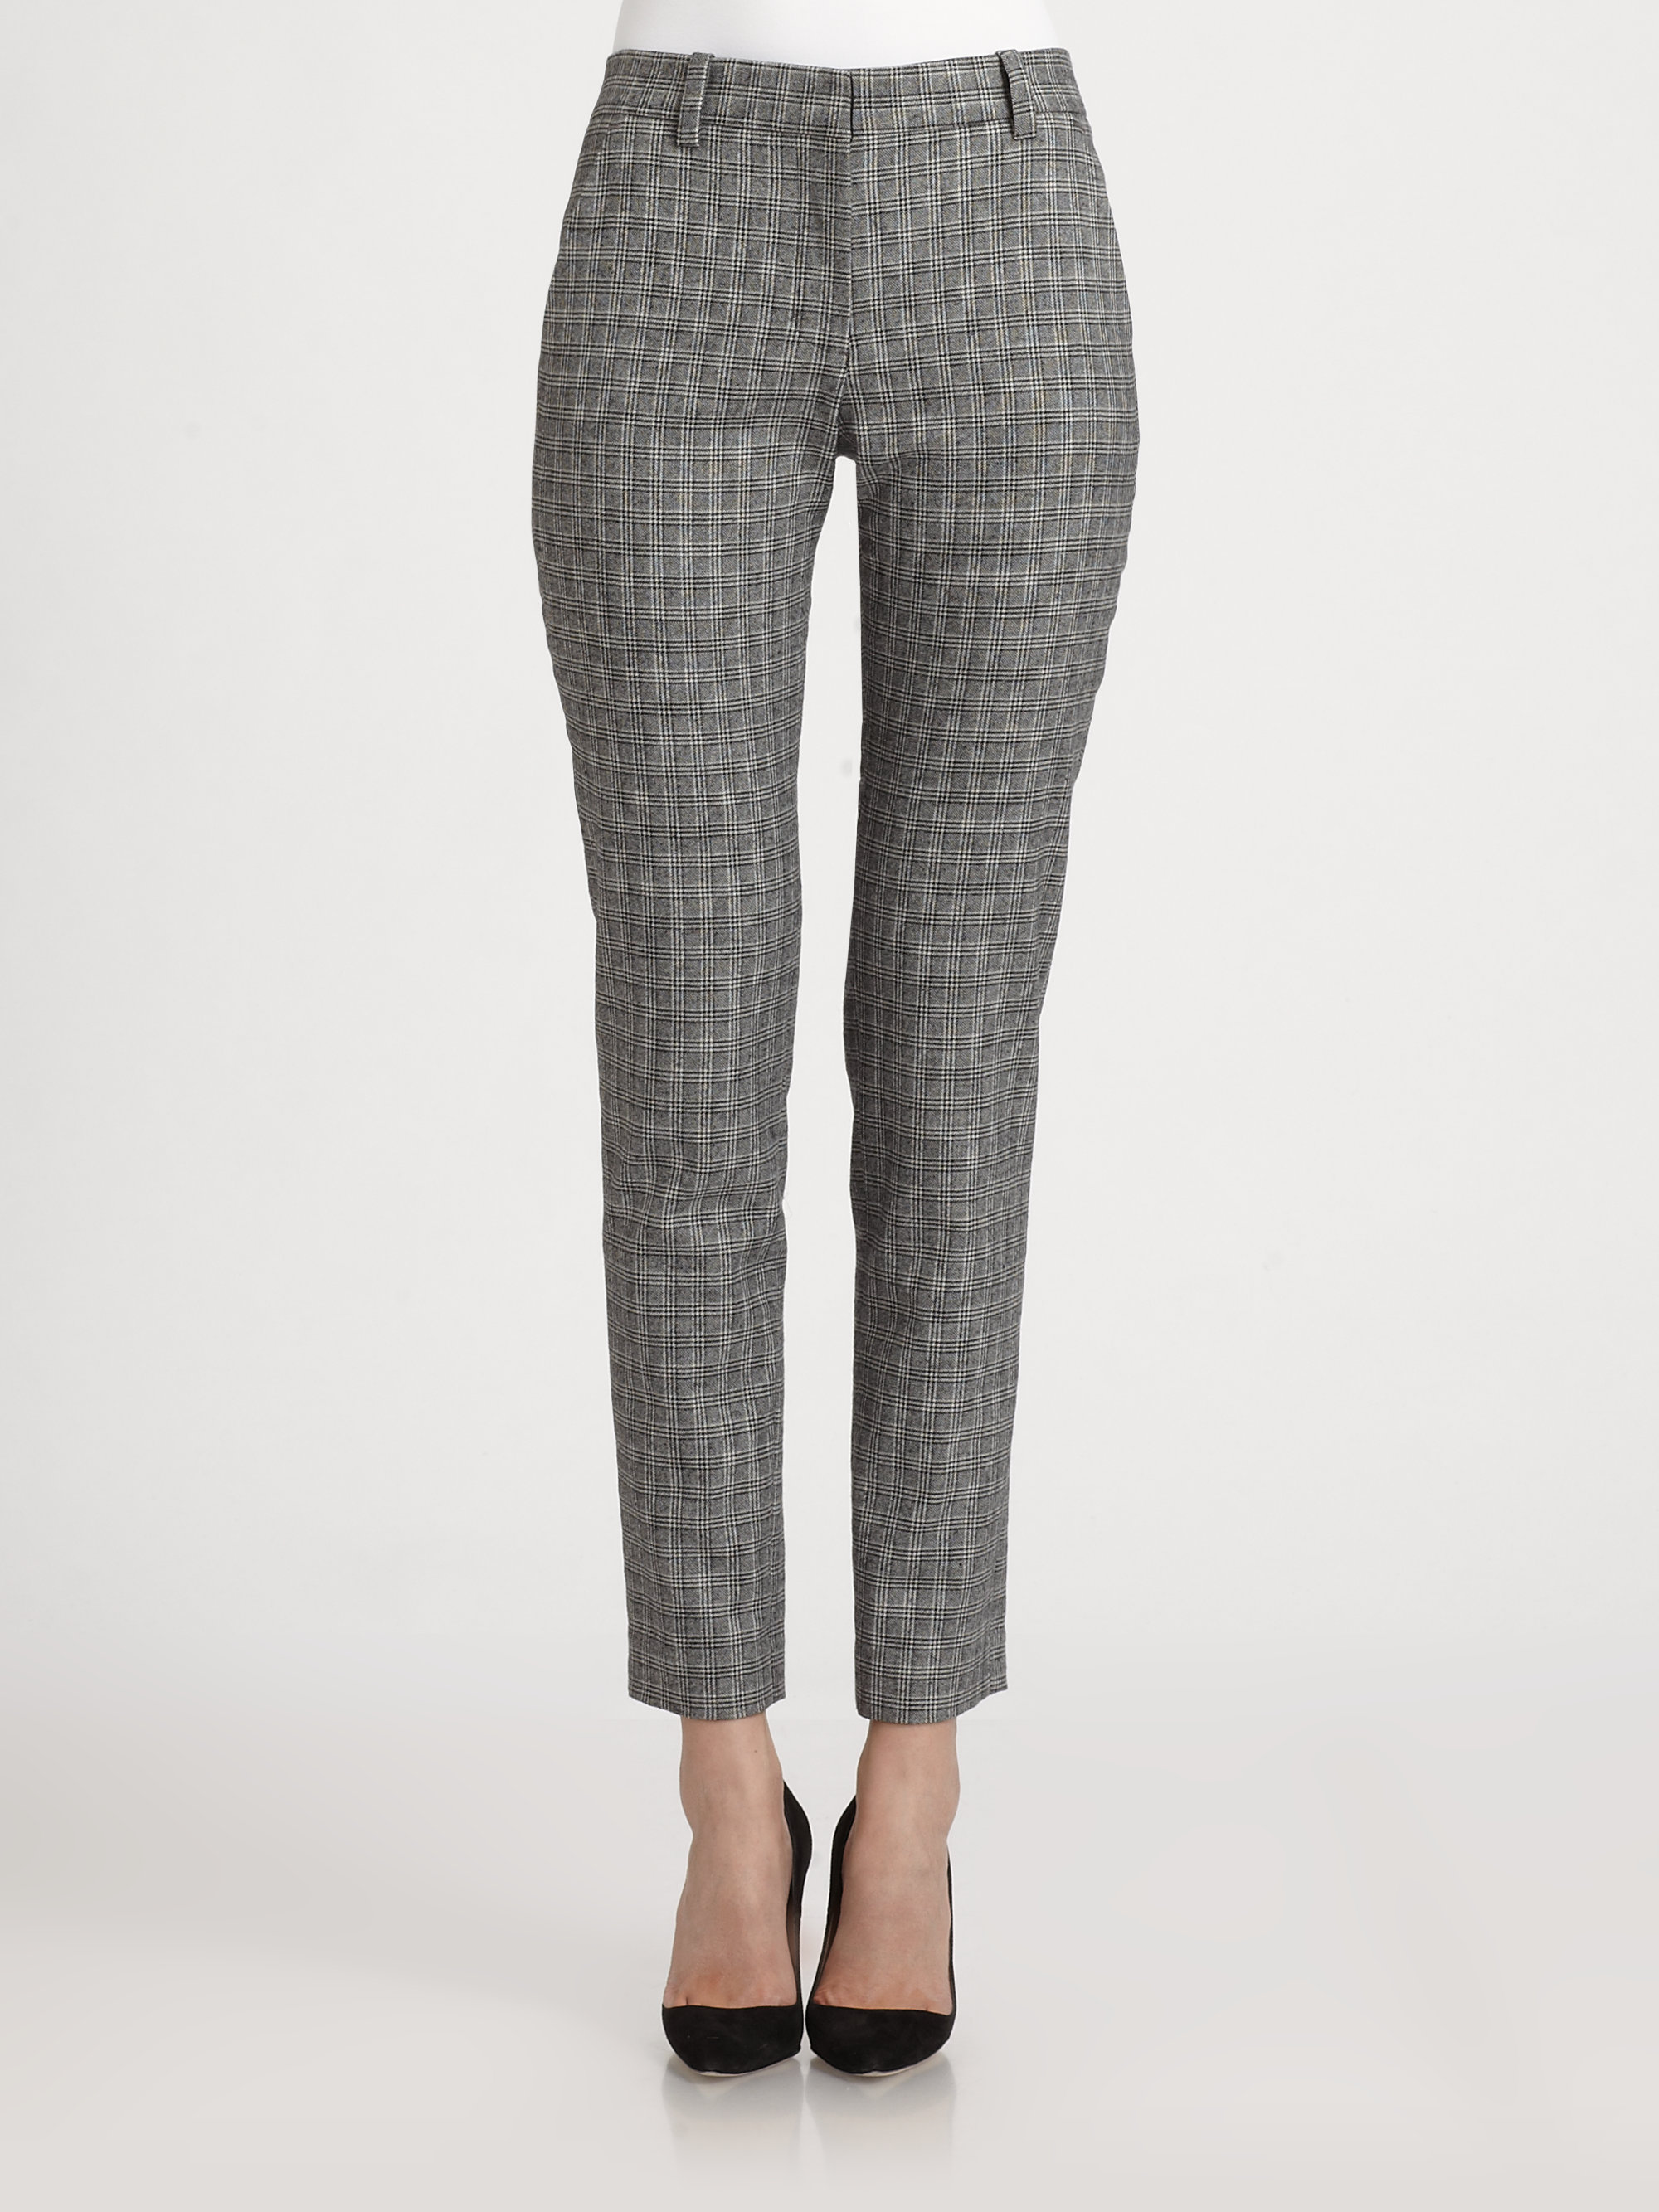 A.l.c. Lagance Plaid Ankle Pants in Gray | Lyst